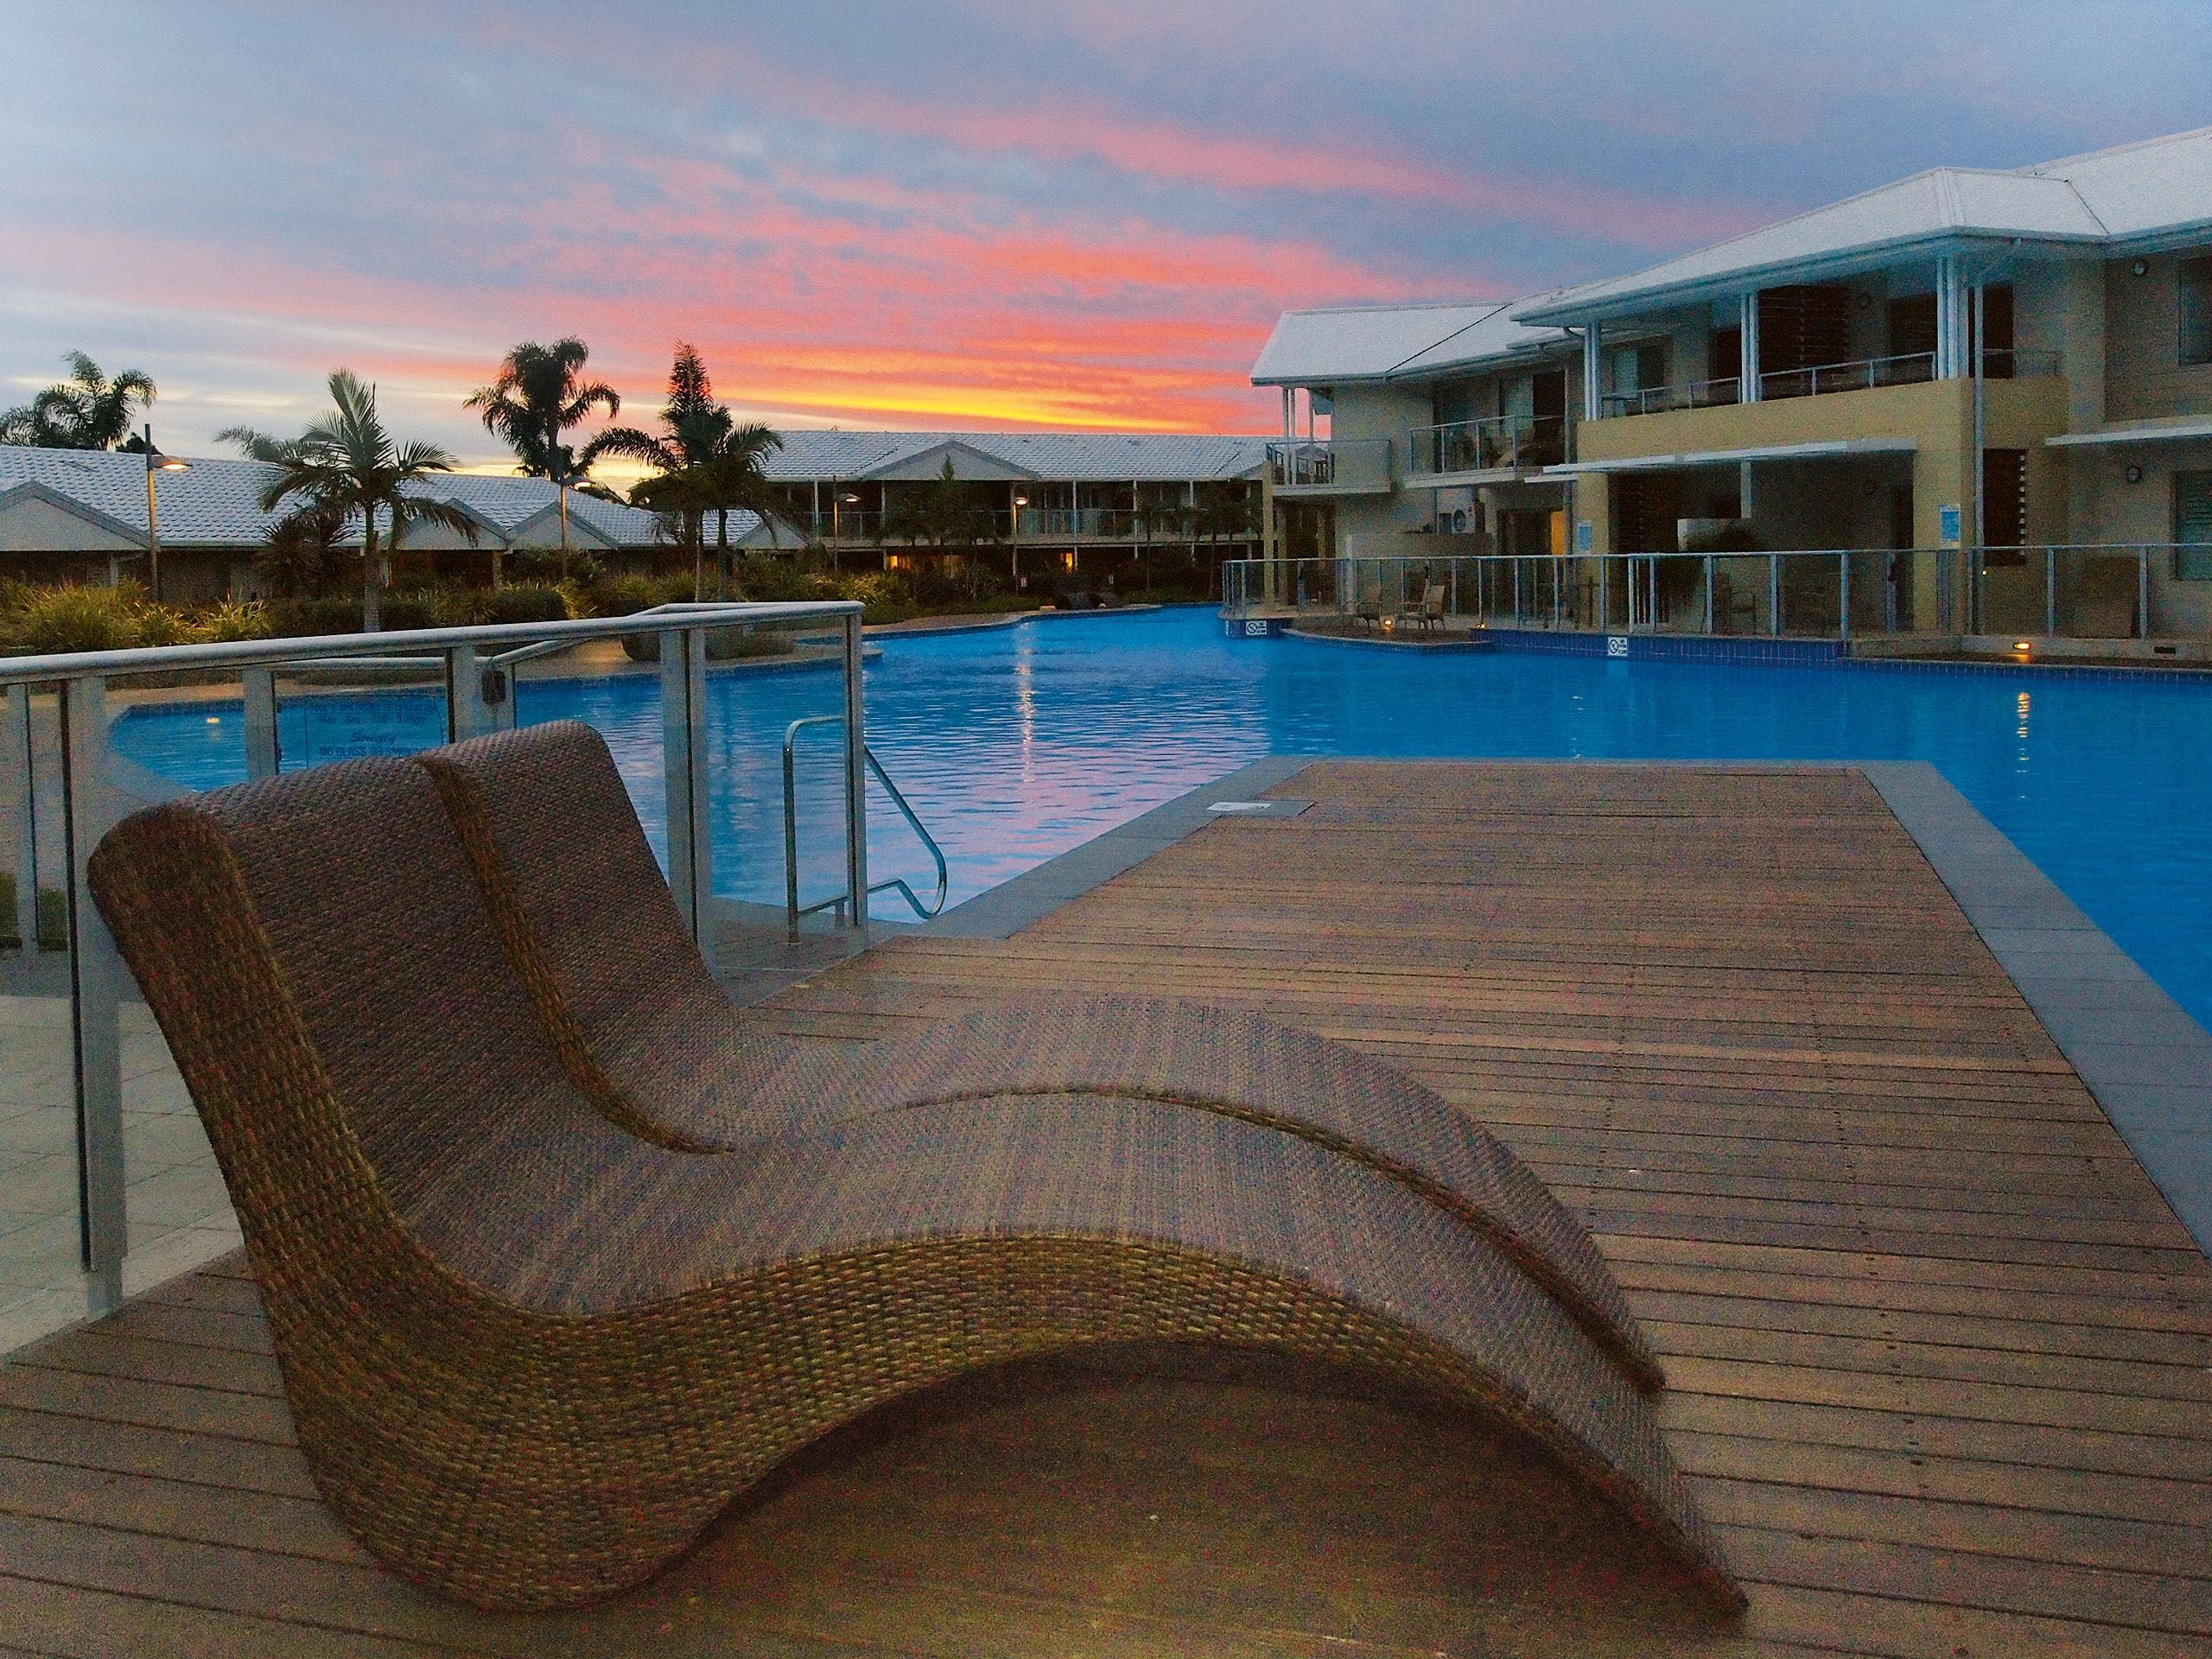 Oaks Port Stephens Pacific Blue Resort - Accommodation Resorts